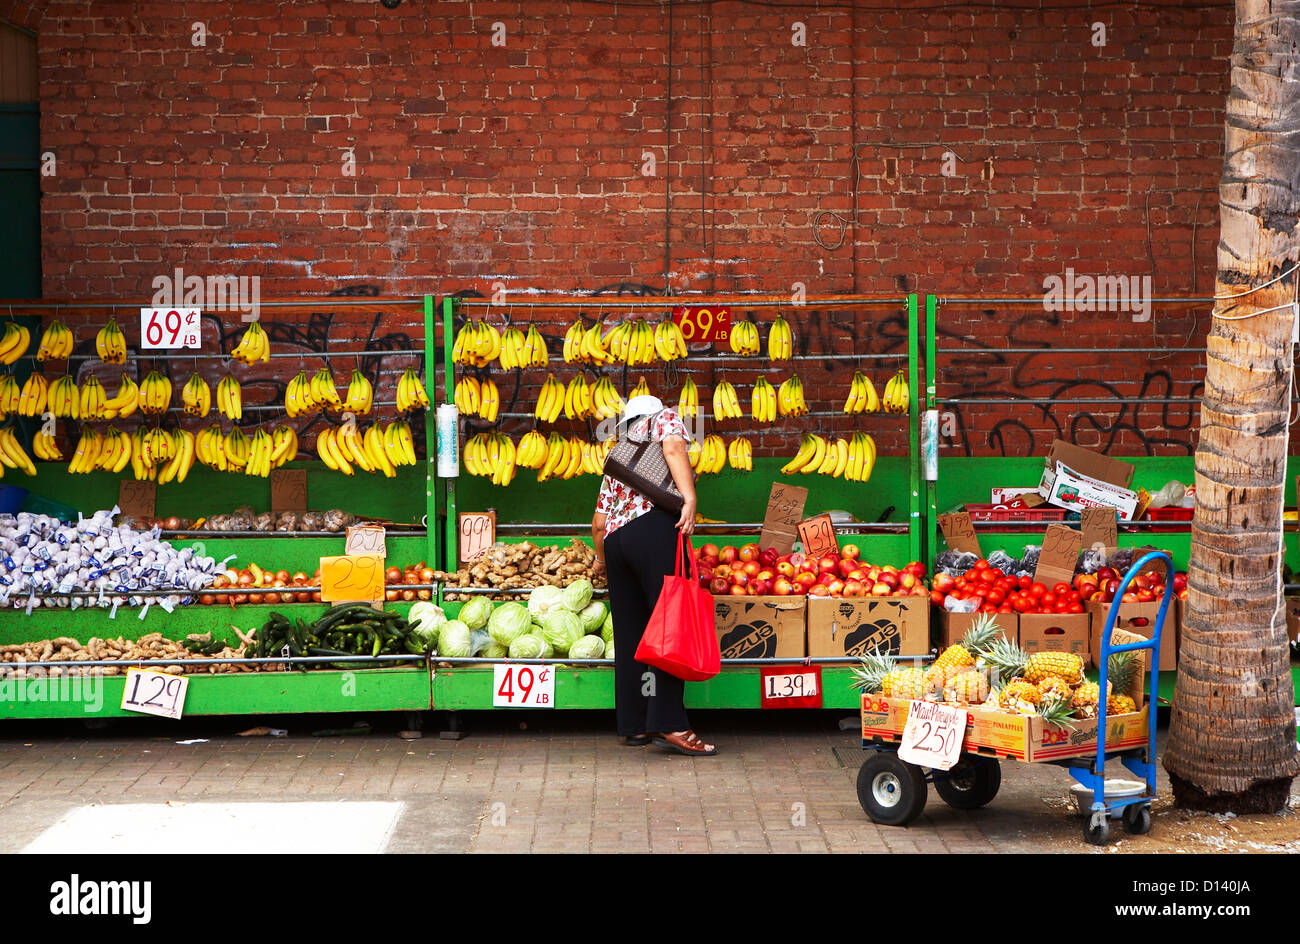 Hawaii, Oahu, Honolulu, Chinatown, Bunches Of Hanging Bananas And Nemour Produce For Sale/N. Stock Photo